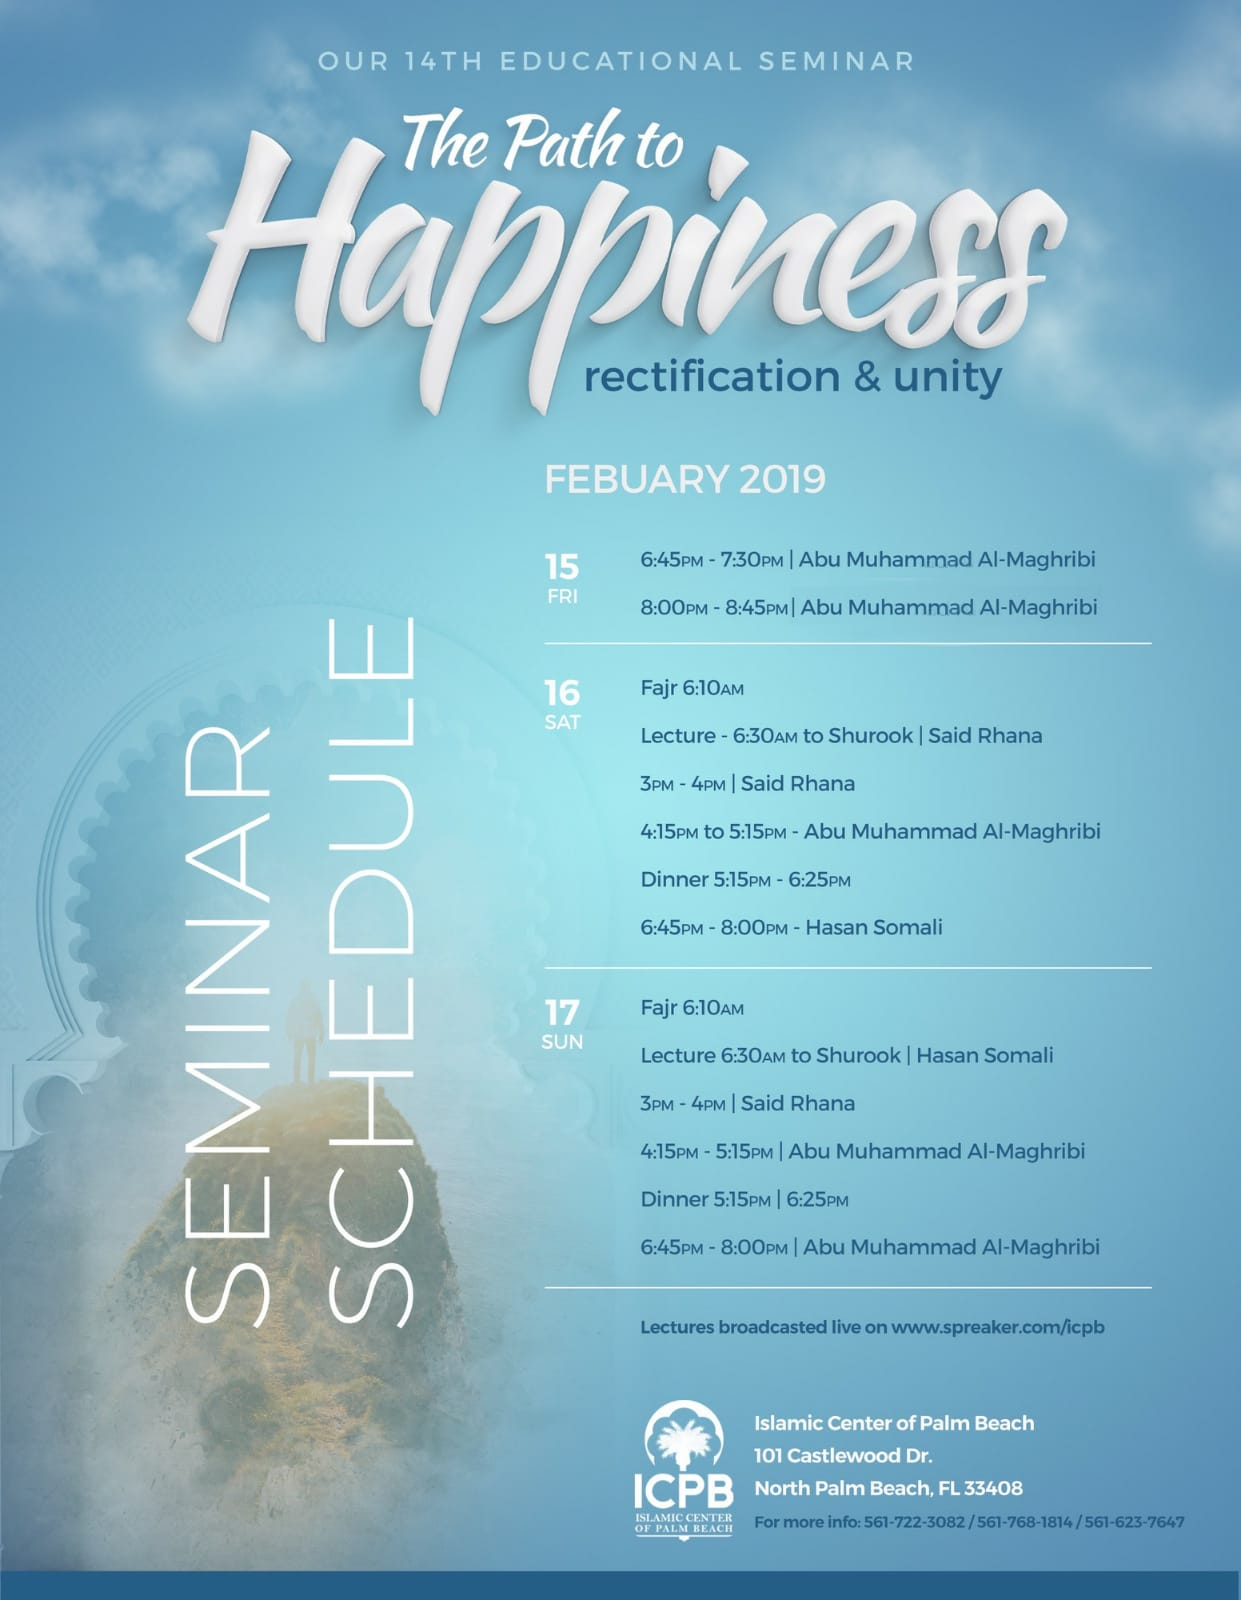 ICPB February 2019 Seminar: The Path to Happiness, Rectification